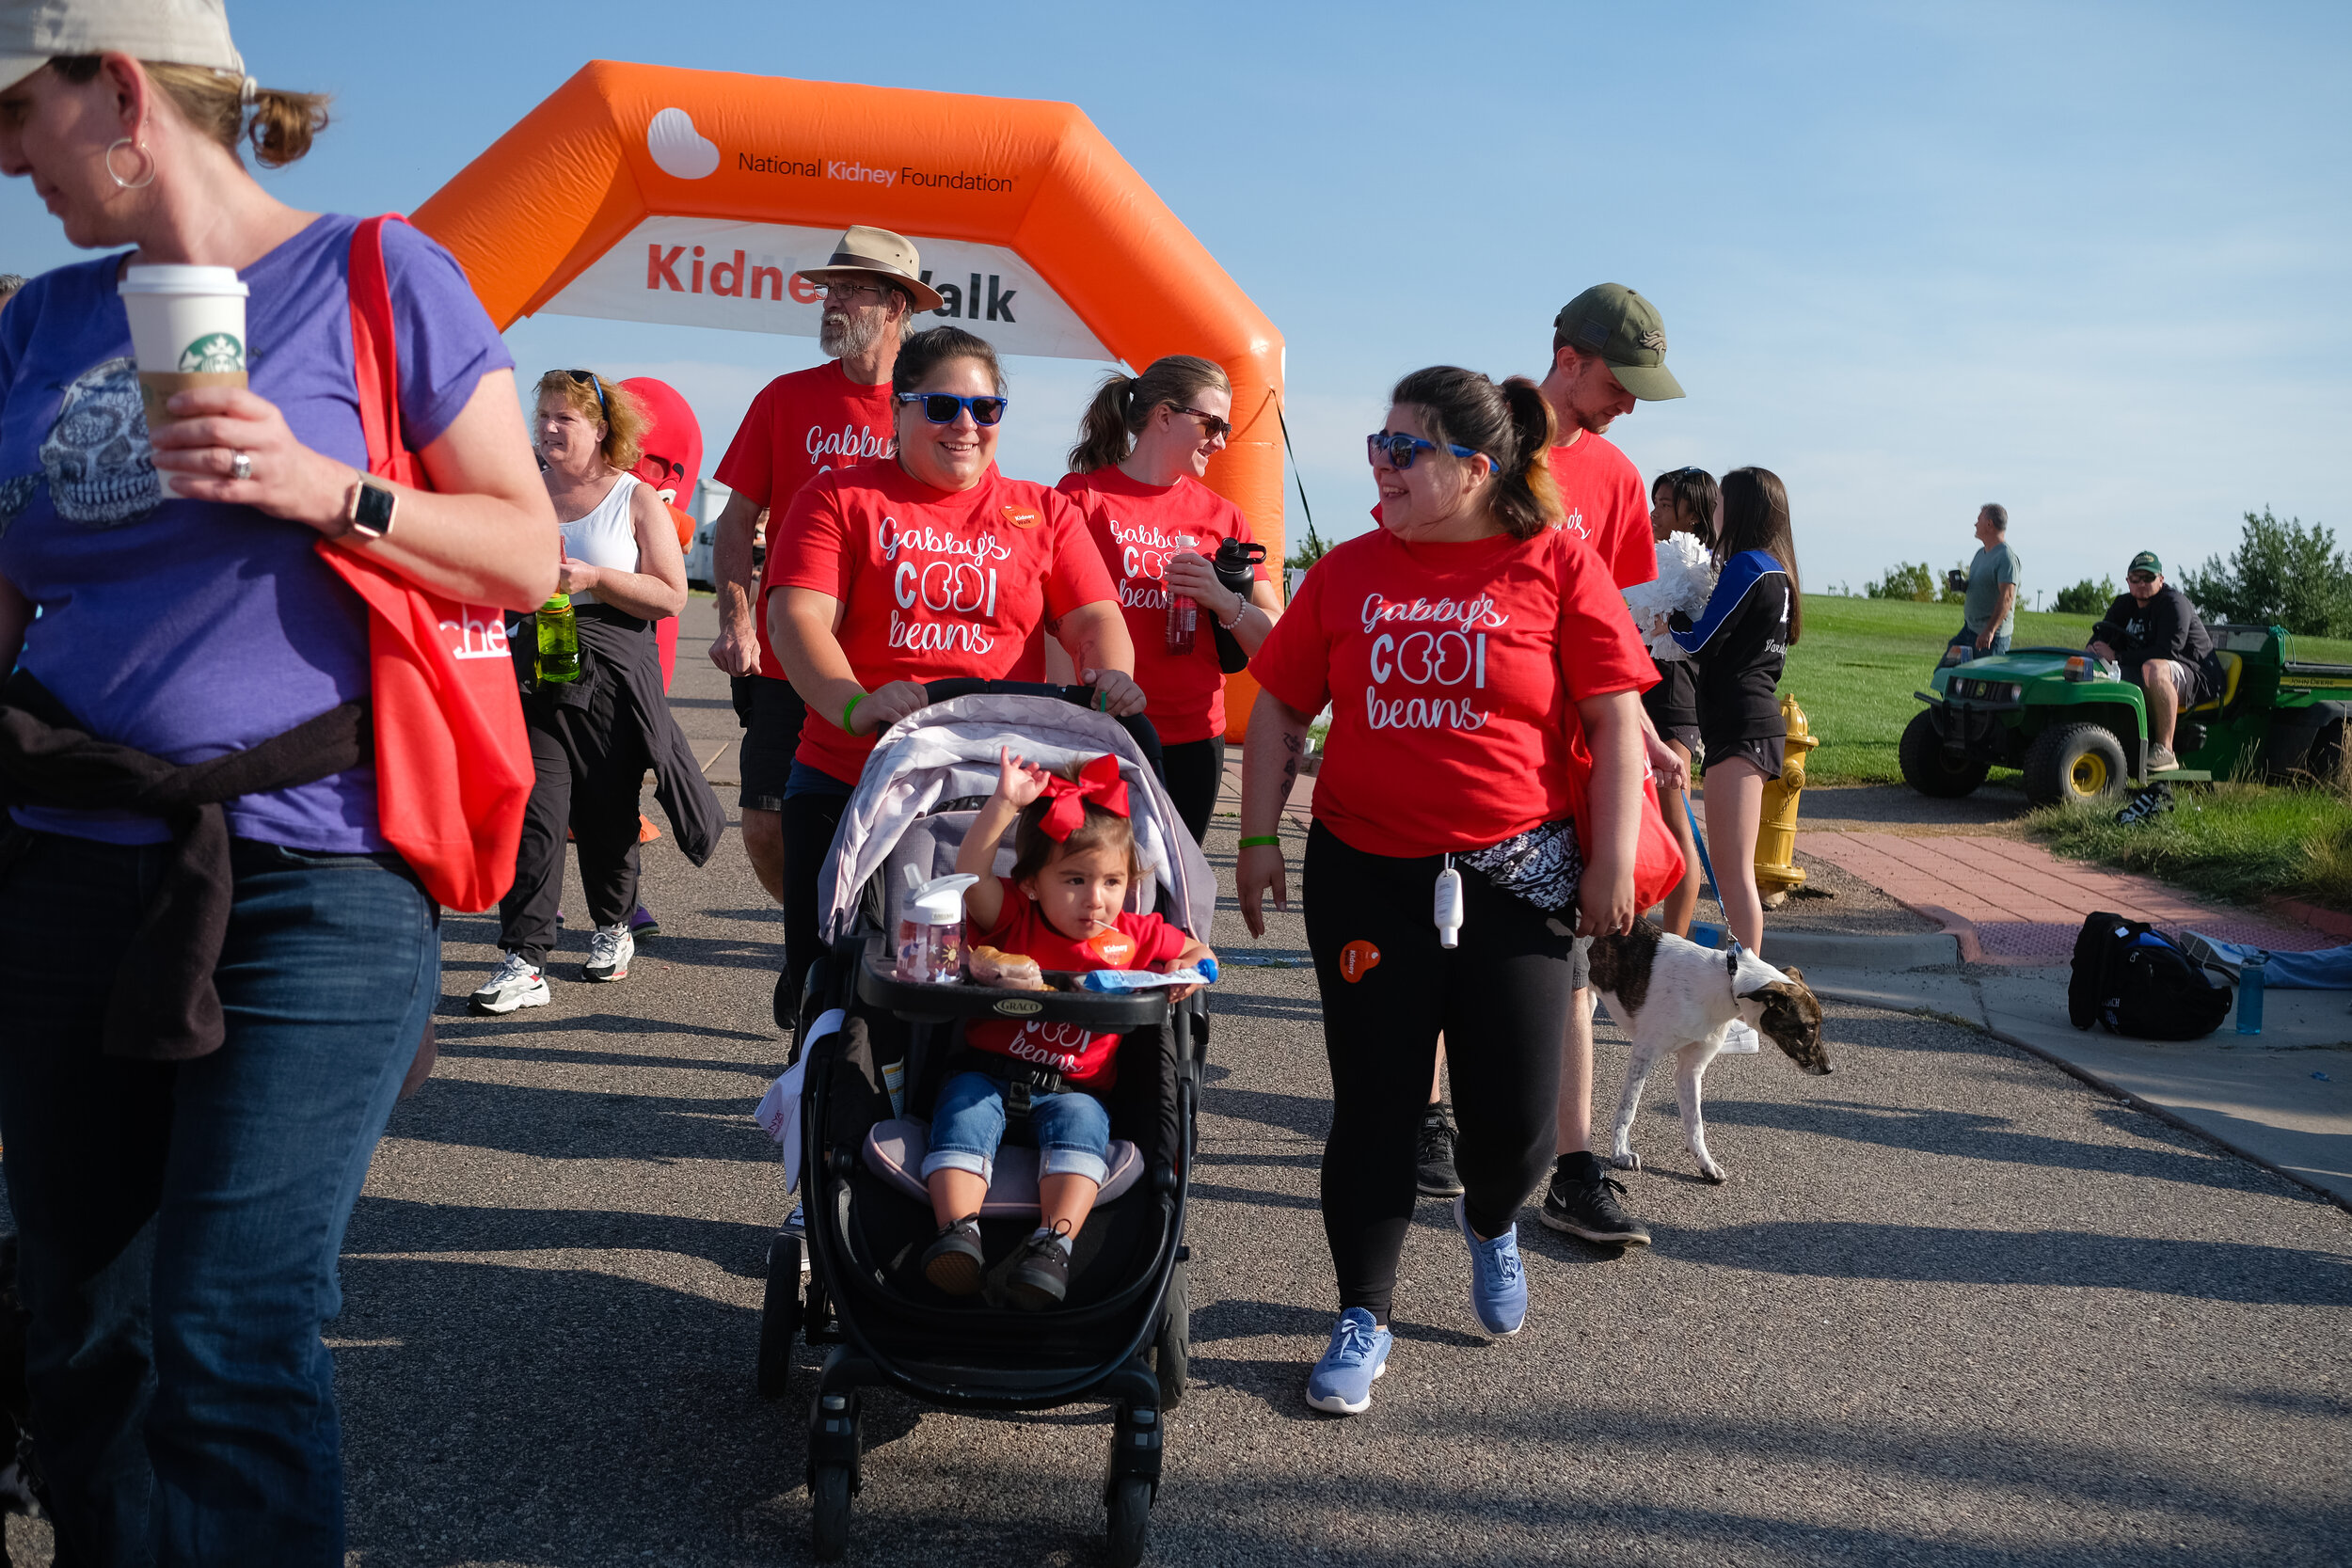 Denver Kidney Walk-102.jpg